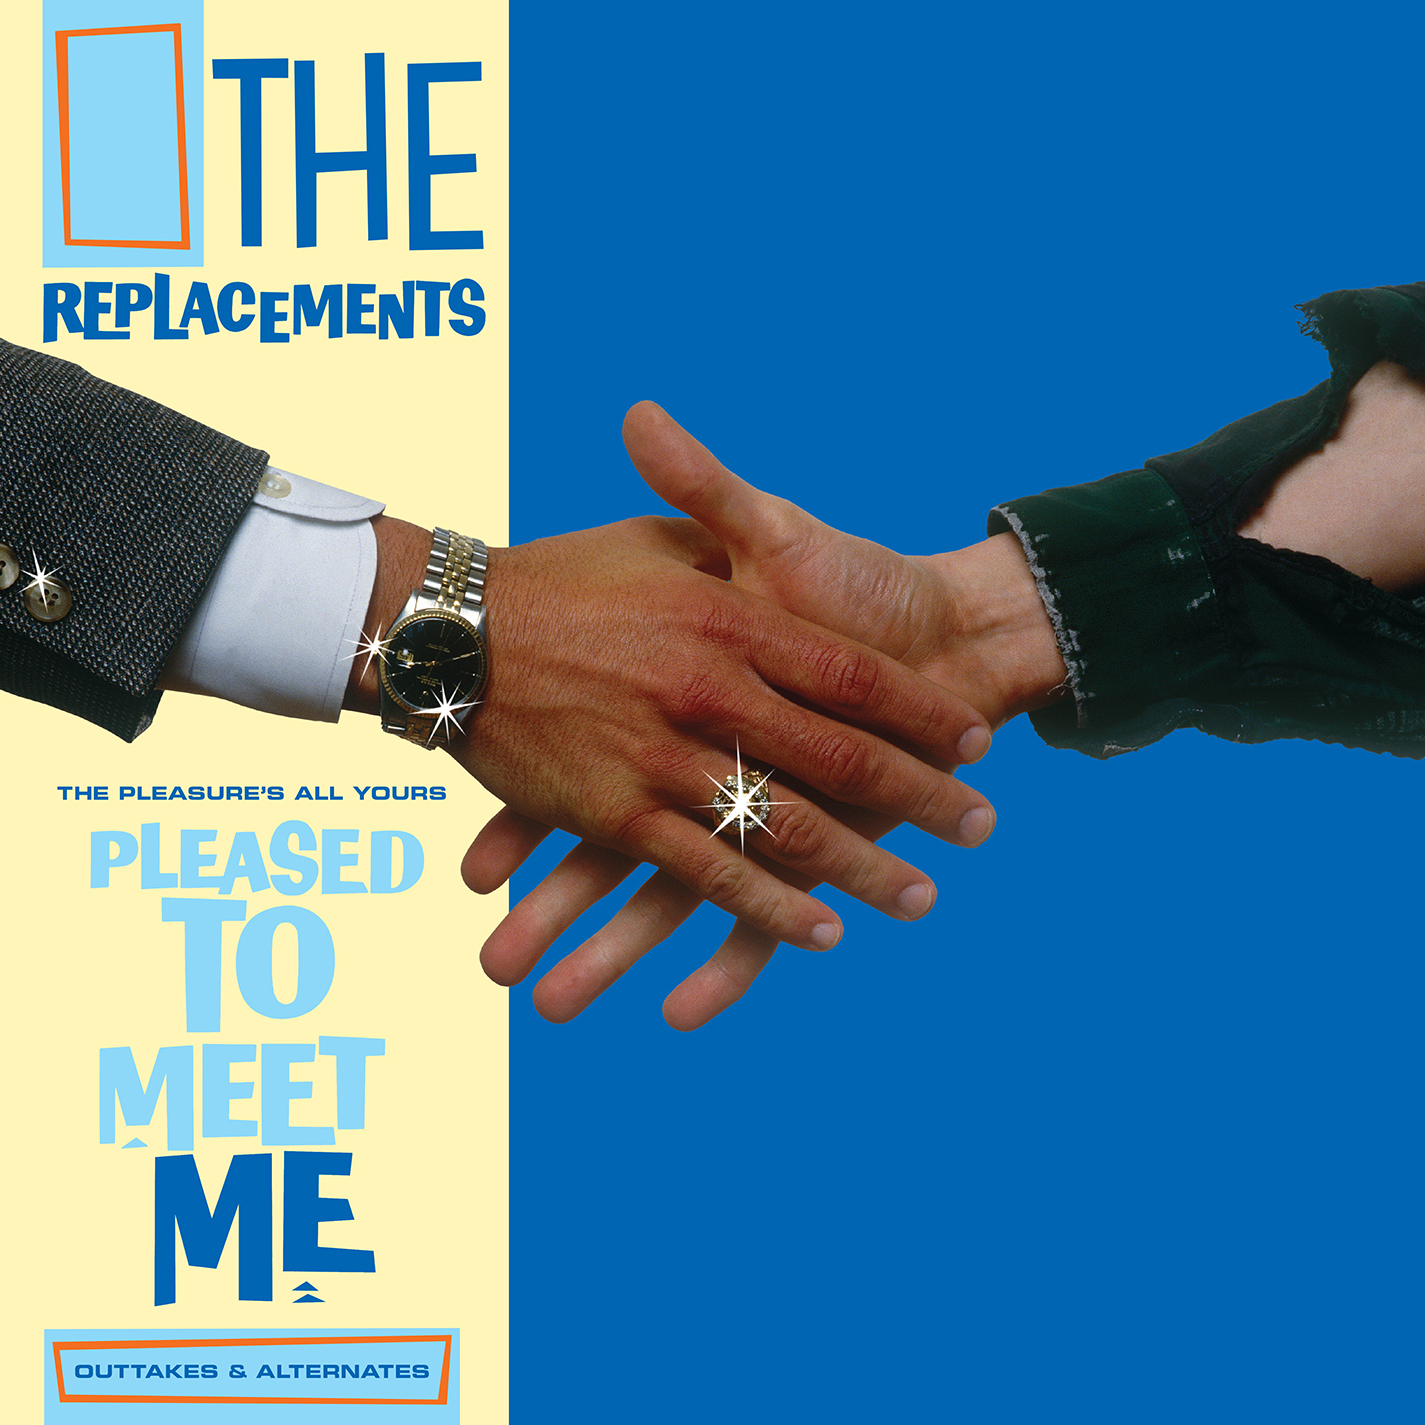 The Replacements - The Pleasure's All Yours: Pleased to Meet Me Outtakes & Alternates [RSD Drops 2021]